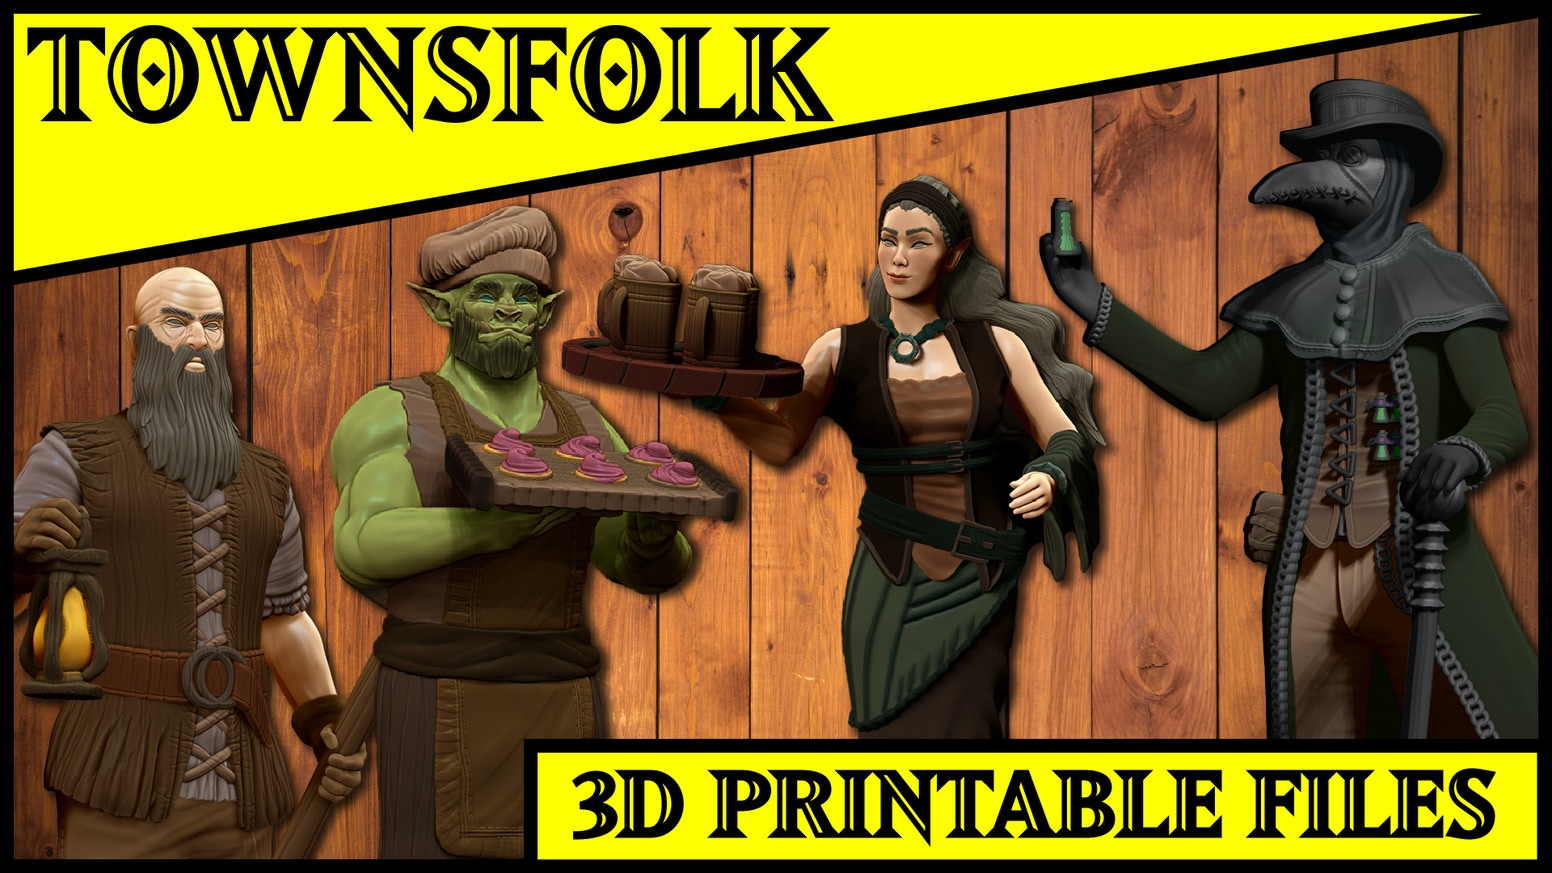 3D printable files optimized for detailed RESIN tabletop miniatures